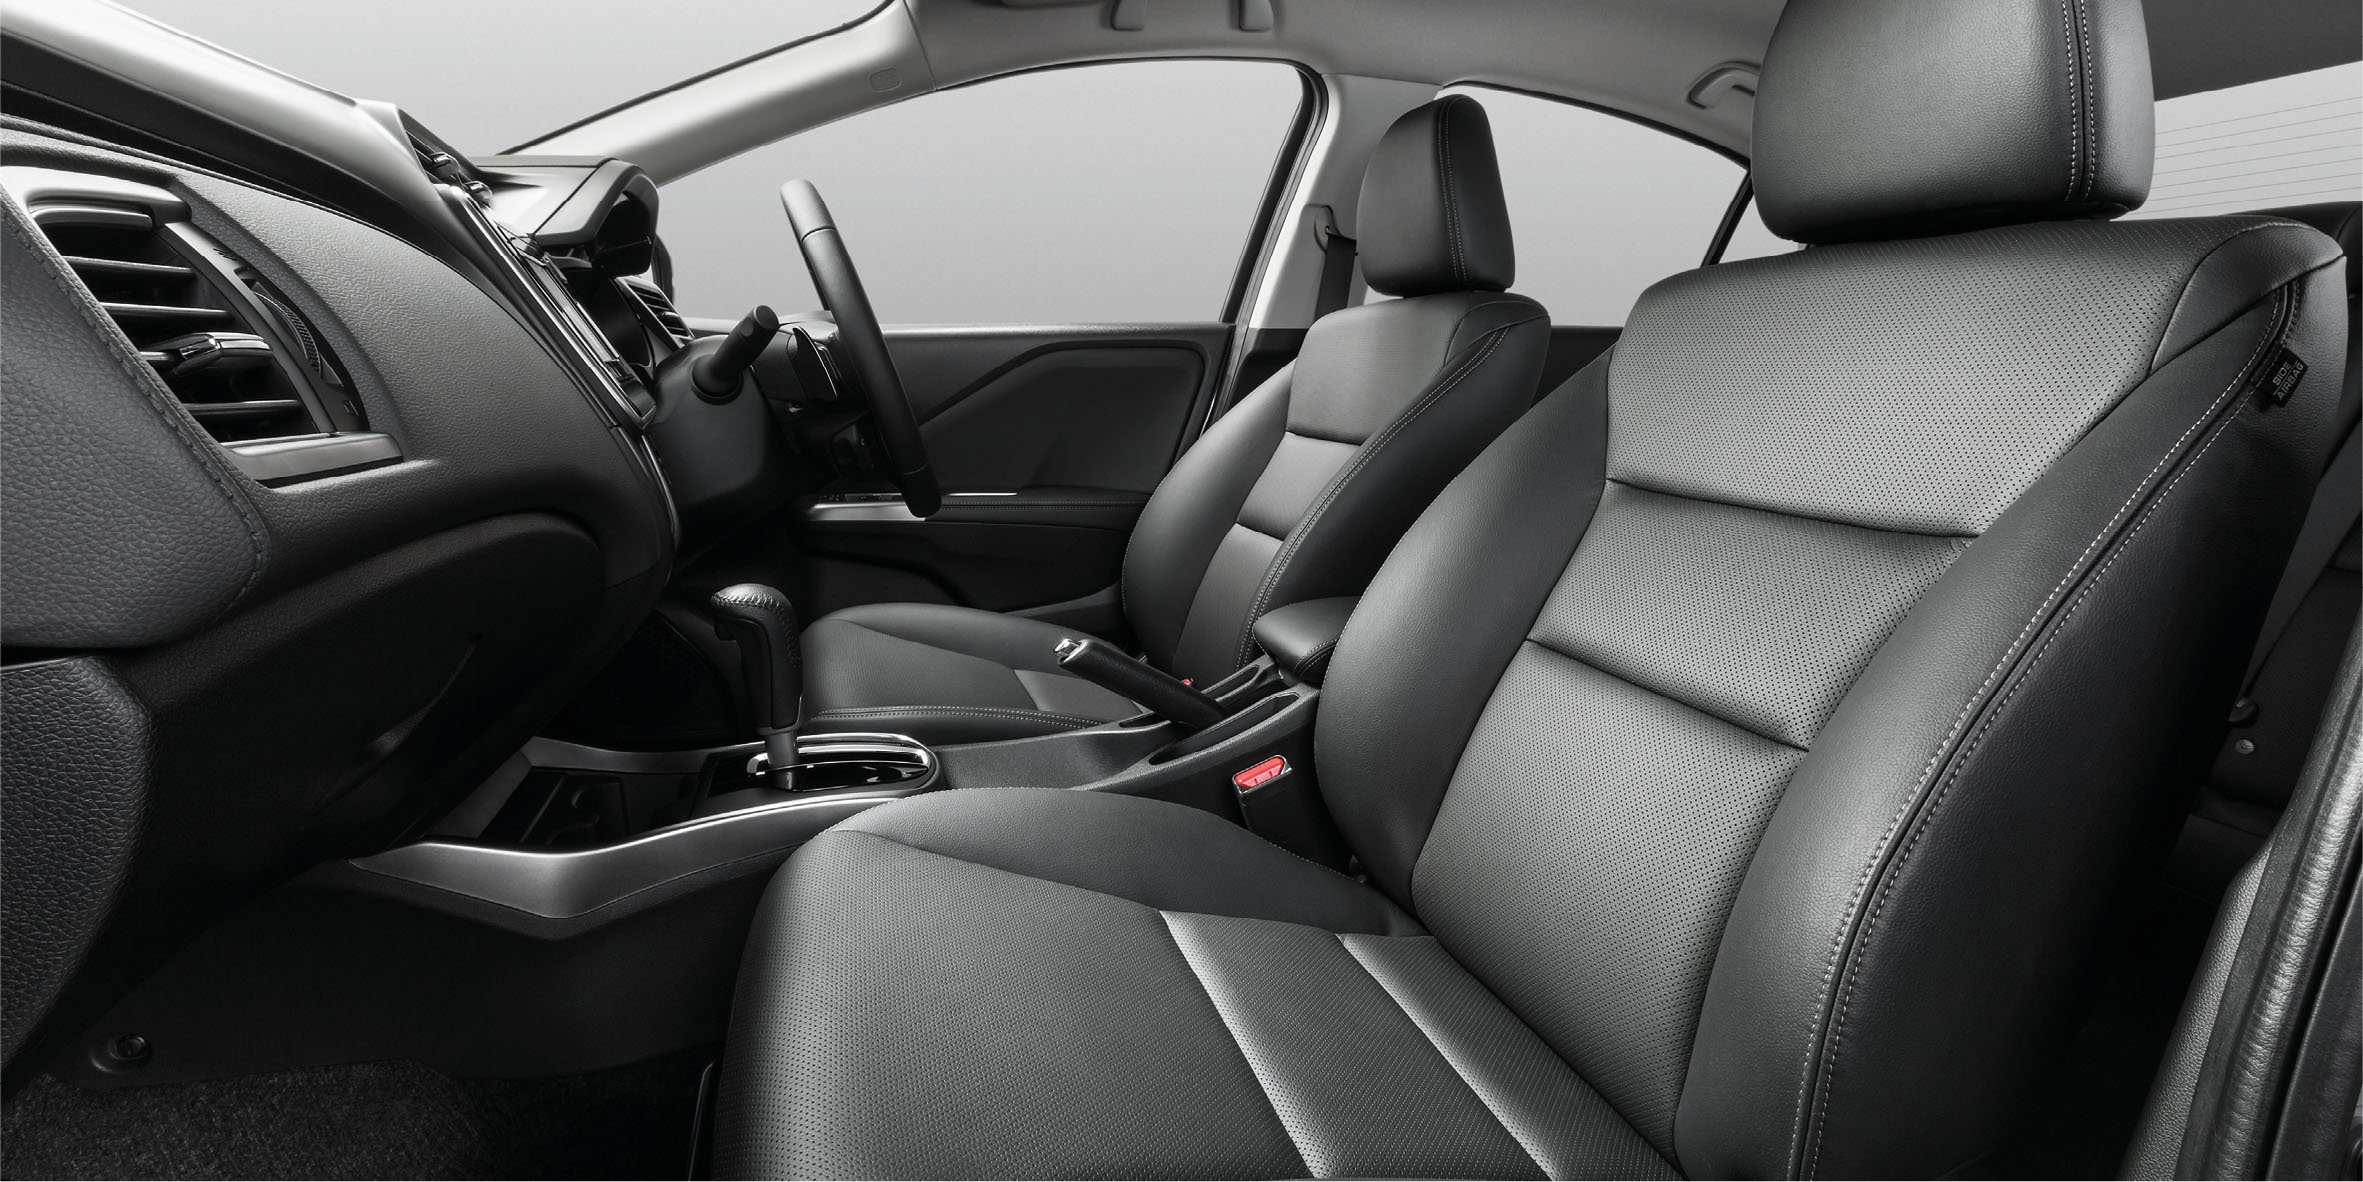 The interior of the new city is developed under honda s man maximum machine minimum design principle that maximizes space for driver passenger and goods